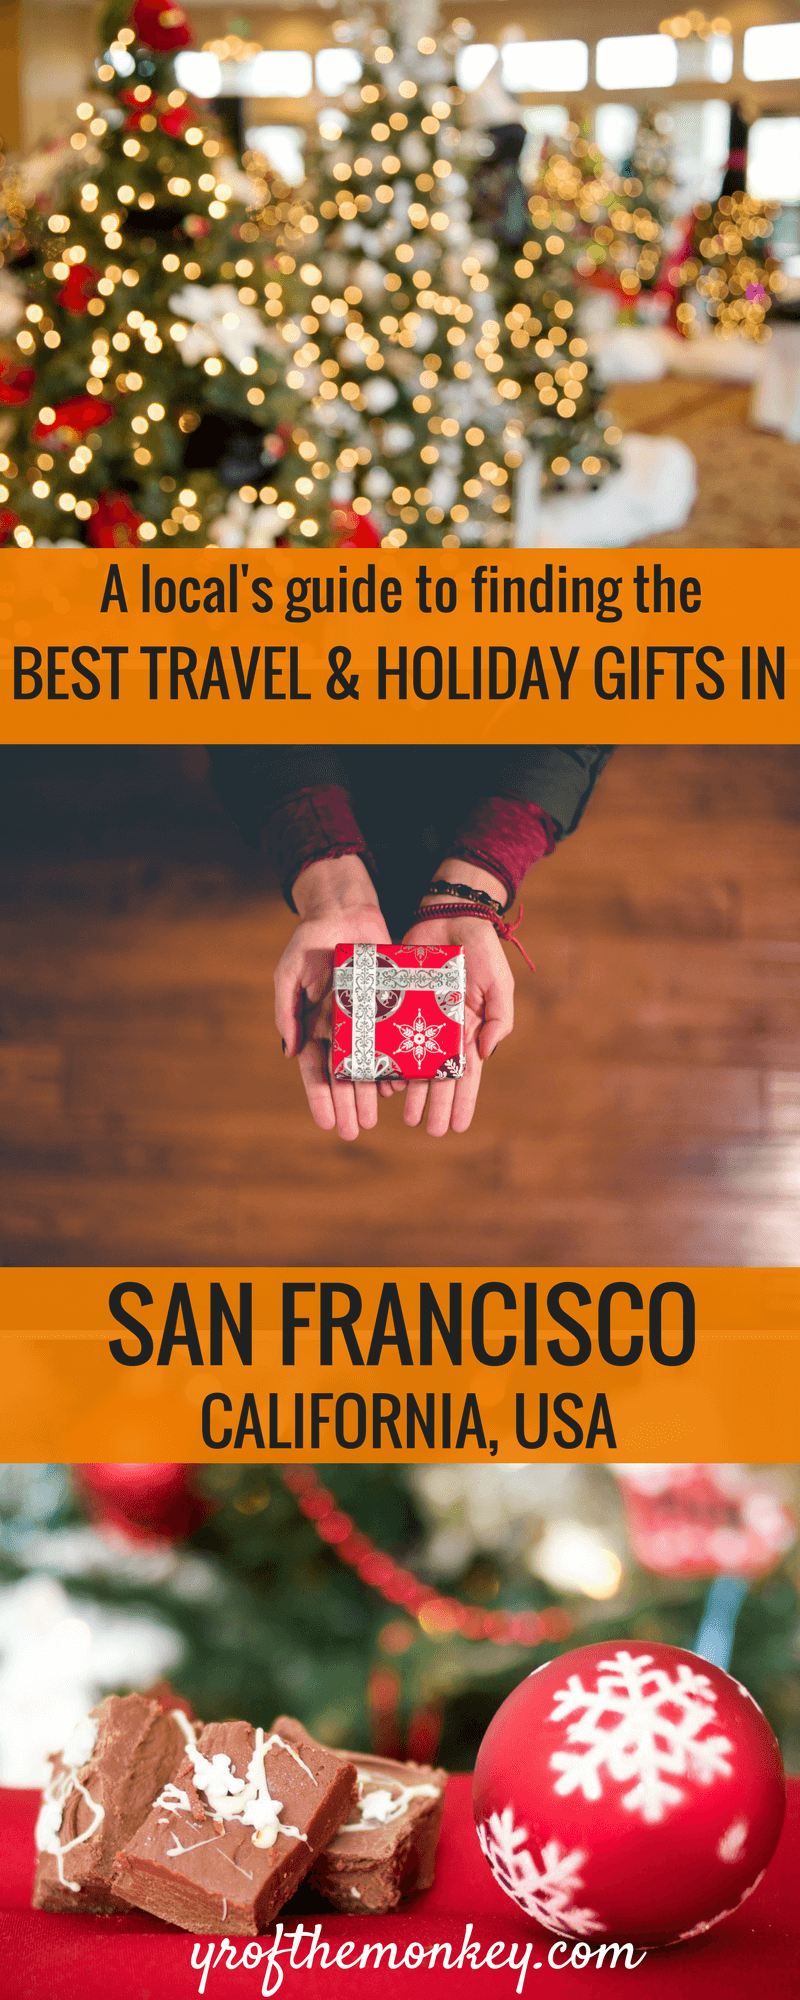 Looking for a holiday gift guide in San Francisco or personalized,local San Francisco Souvenirs? Read this local's guide to find the best Christmas and Thanksgiving gifts in San Francisco from the SFMade collective. Pin it to your San Francisco board. San Francisco shopping| San Francisco gift Guide| Shopping in San Francisco| Holiday shopping | Christmas shopping| Holiday gift guide| where to shop in San Francisco